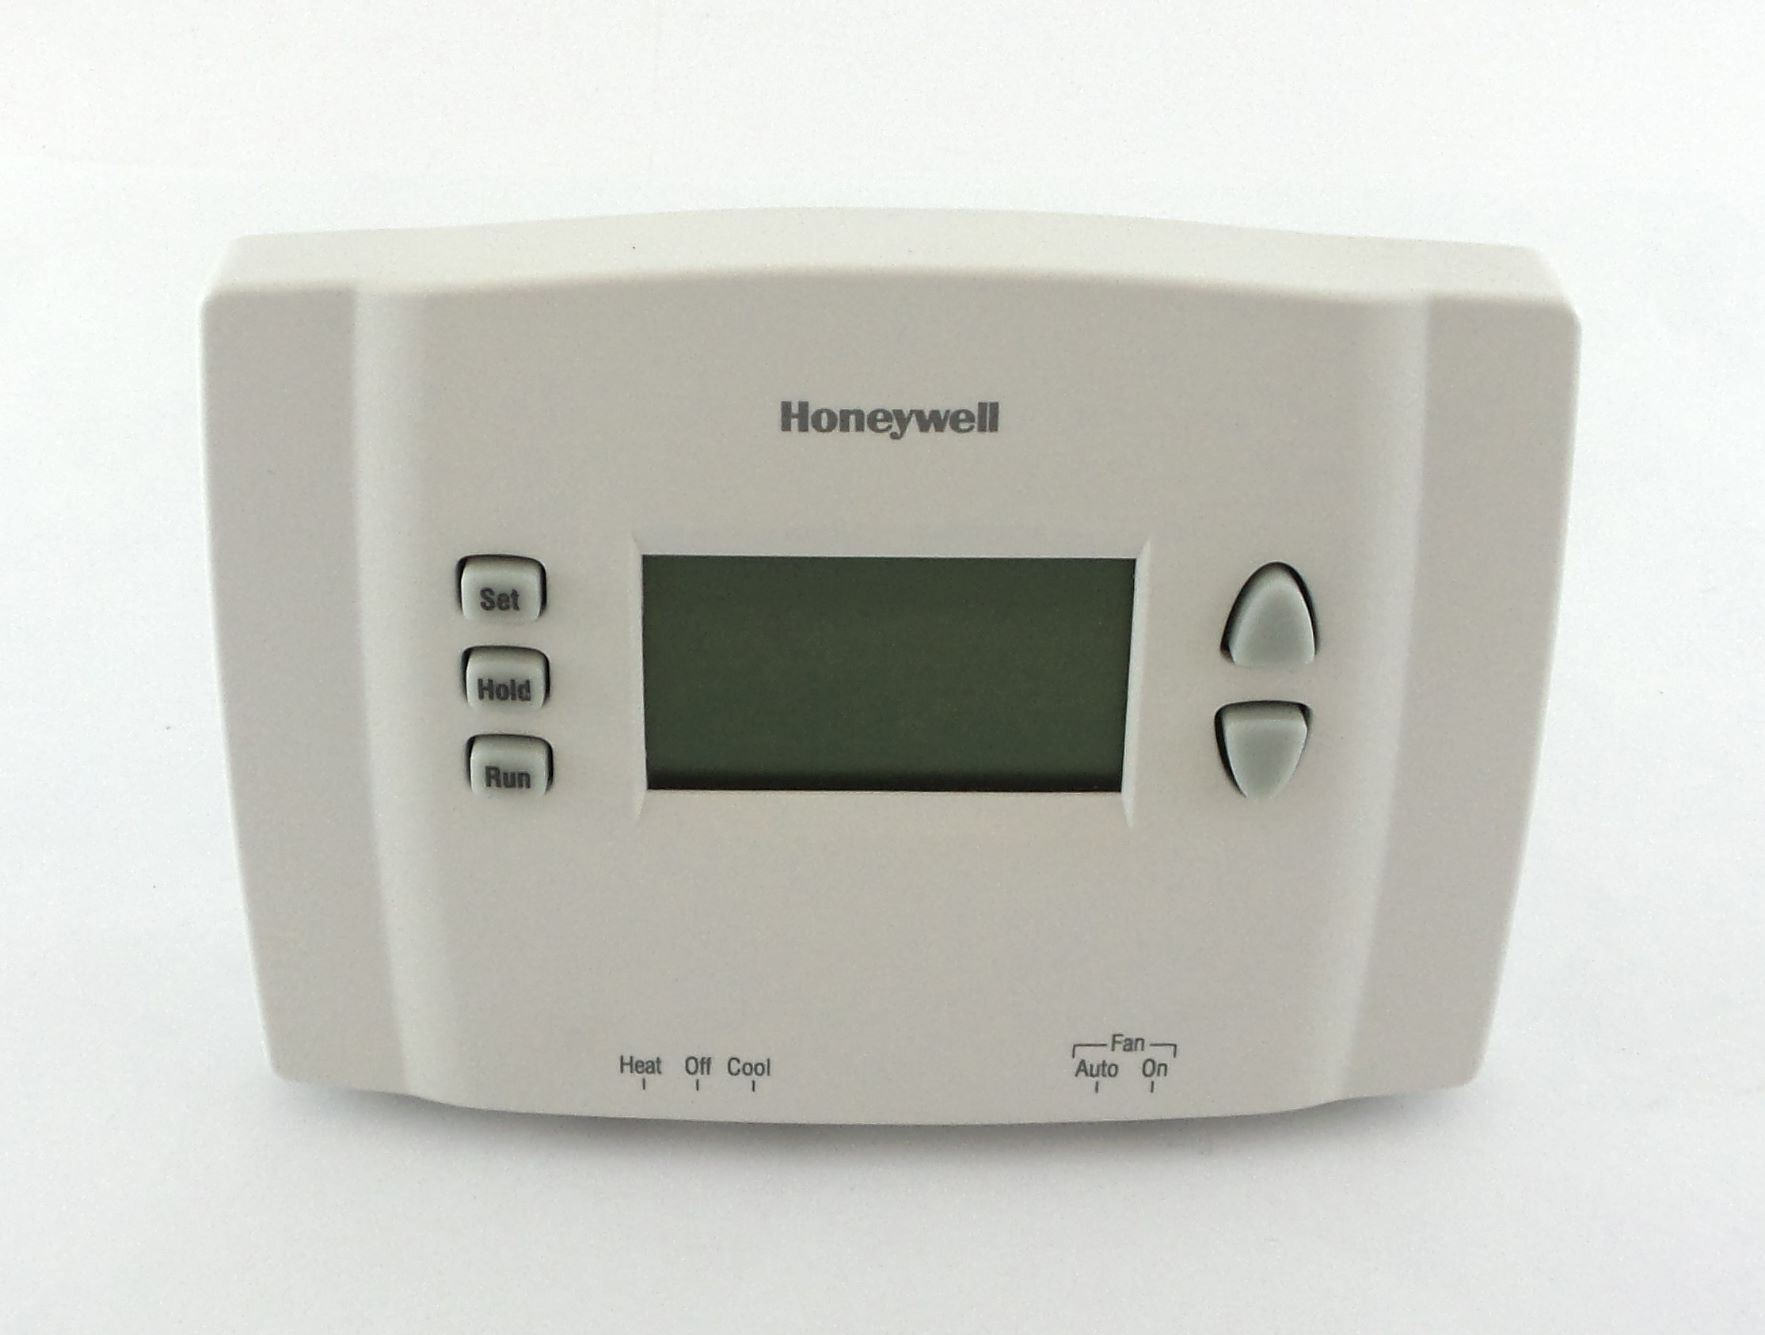 Honeywell Programmable Thermostat Details About Honeywell Rth221b 1 Week Programmable Thermostat F C Display White See Desc